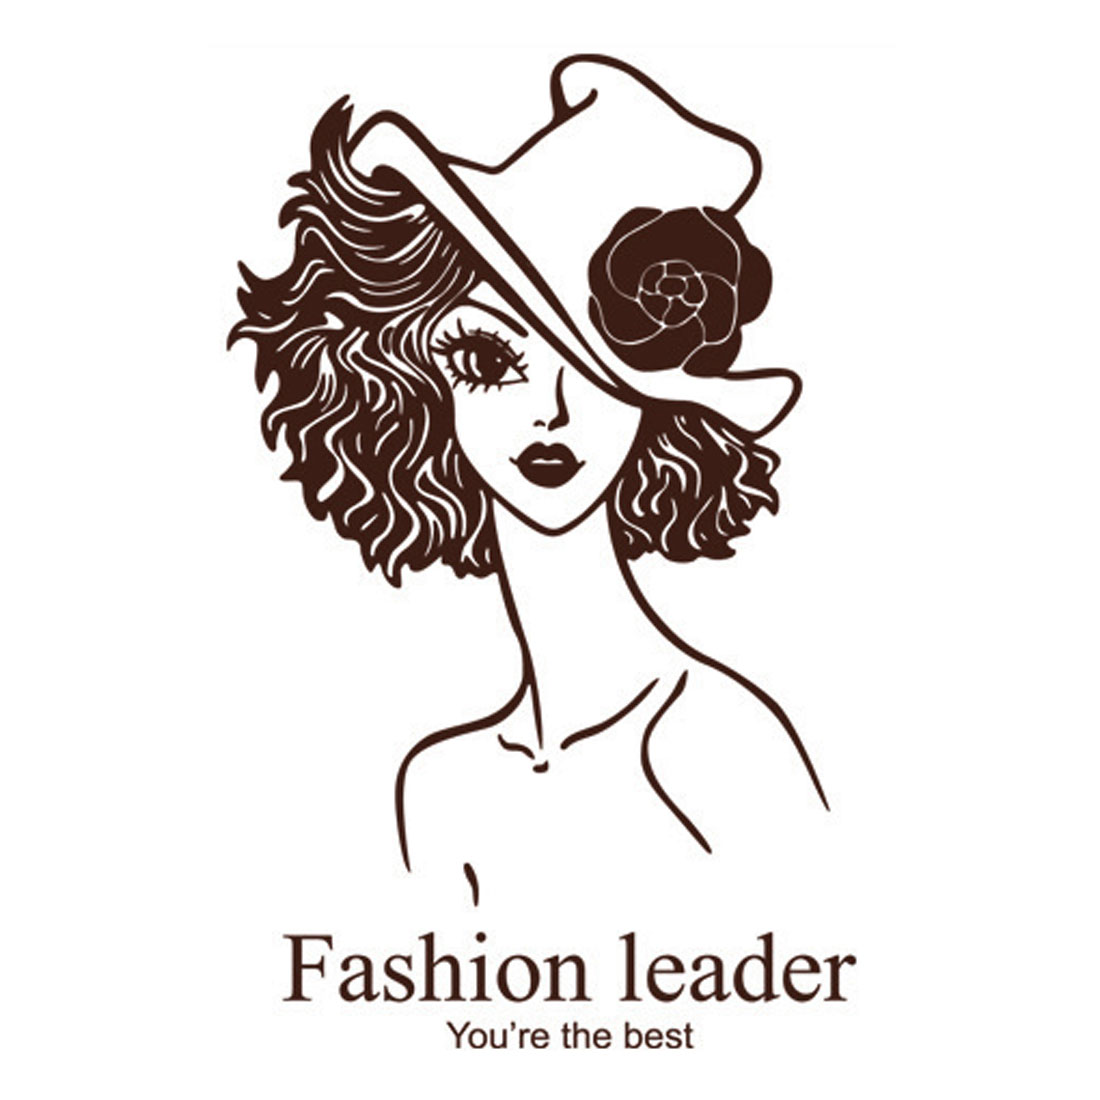 Dark Brown Home Room Decor DIY Removable Fashion Lady Pattern Wall Sticker Decal